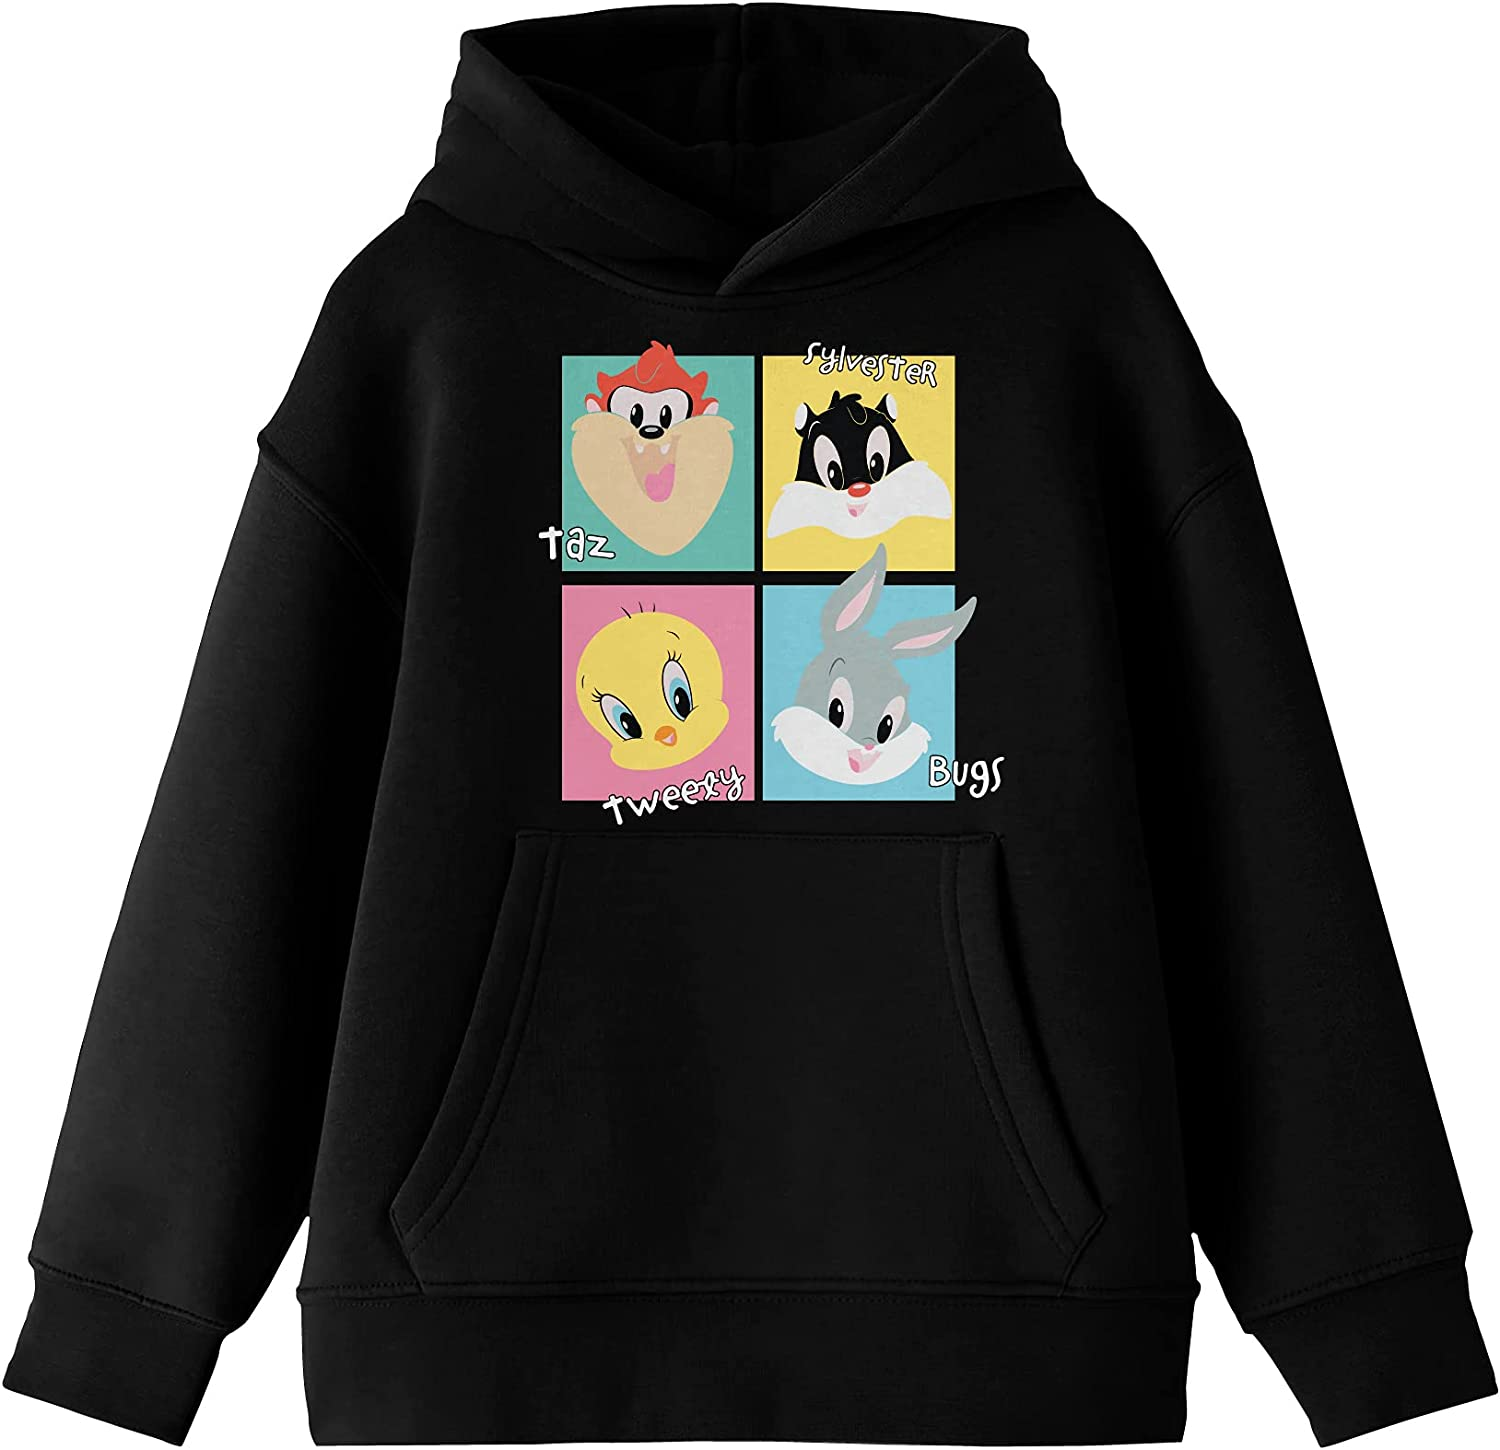 Youth Special sale item Boys Ultra-Cheap Deals Looney Tunes Chibi Hoode Block Black Color Characters